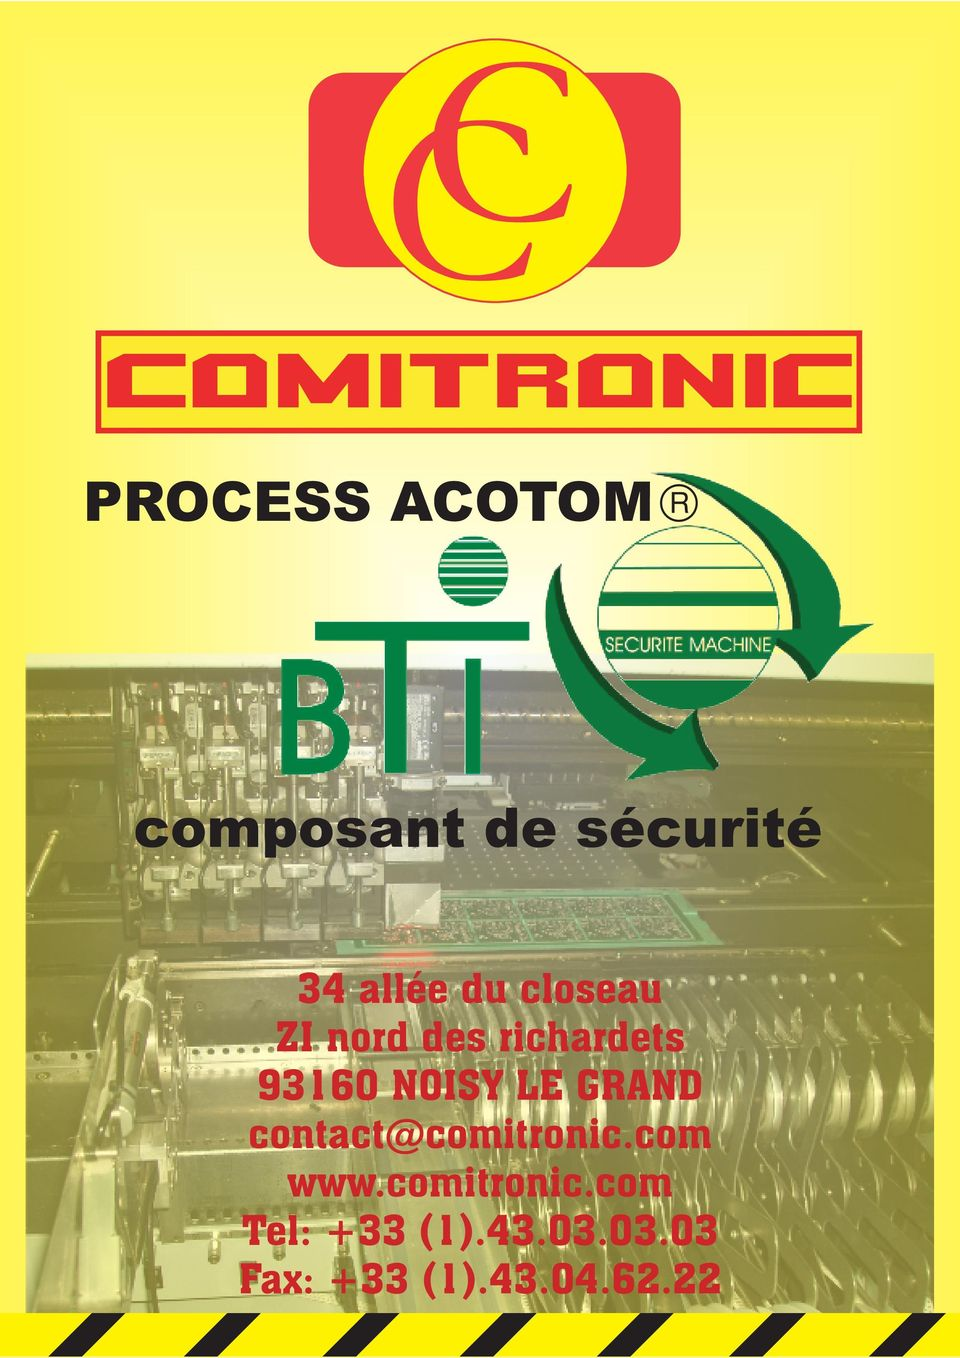 NOISY LE GRAND contact@comitronic.com www.